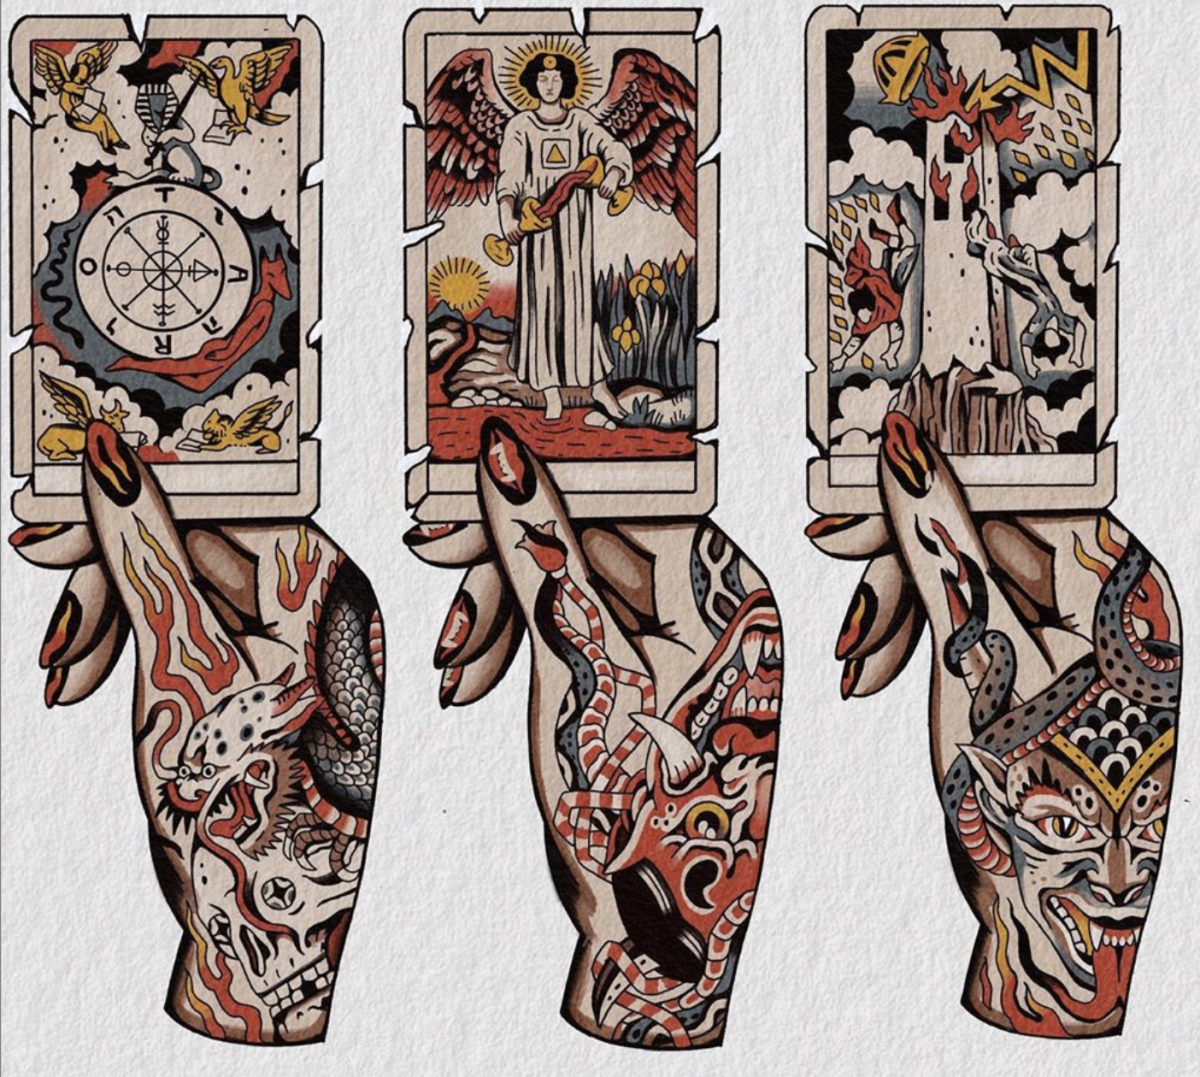 Caige Baker is an expert tattooist who often works with tarot imagery. His tattoos are worth traveling to Calgary, Alberta for. Find him on Instagram @caigebaker.